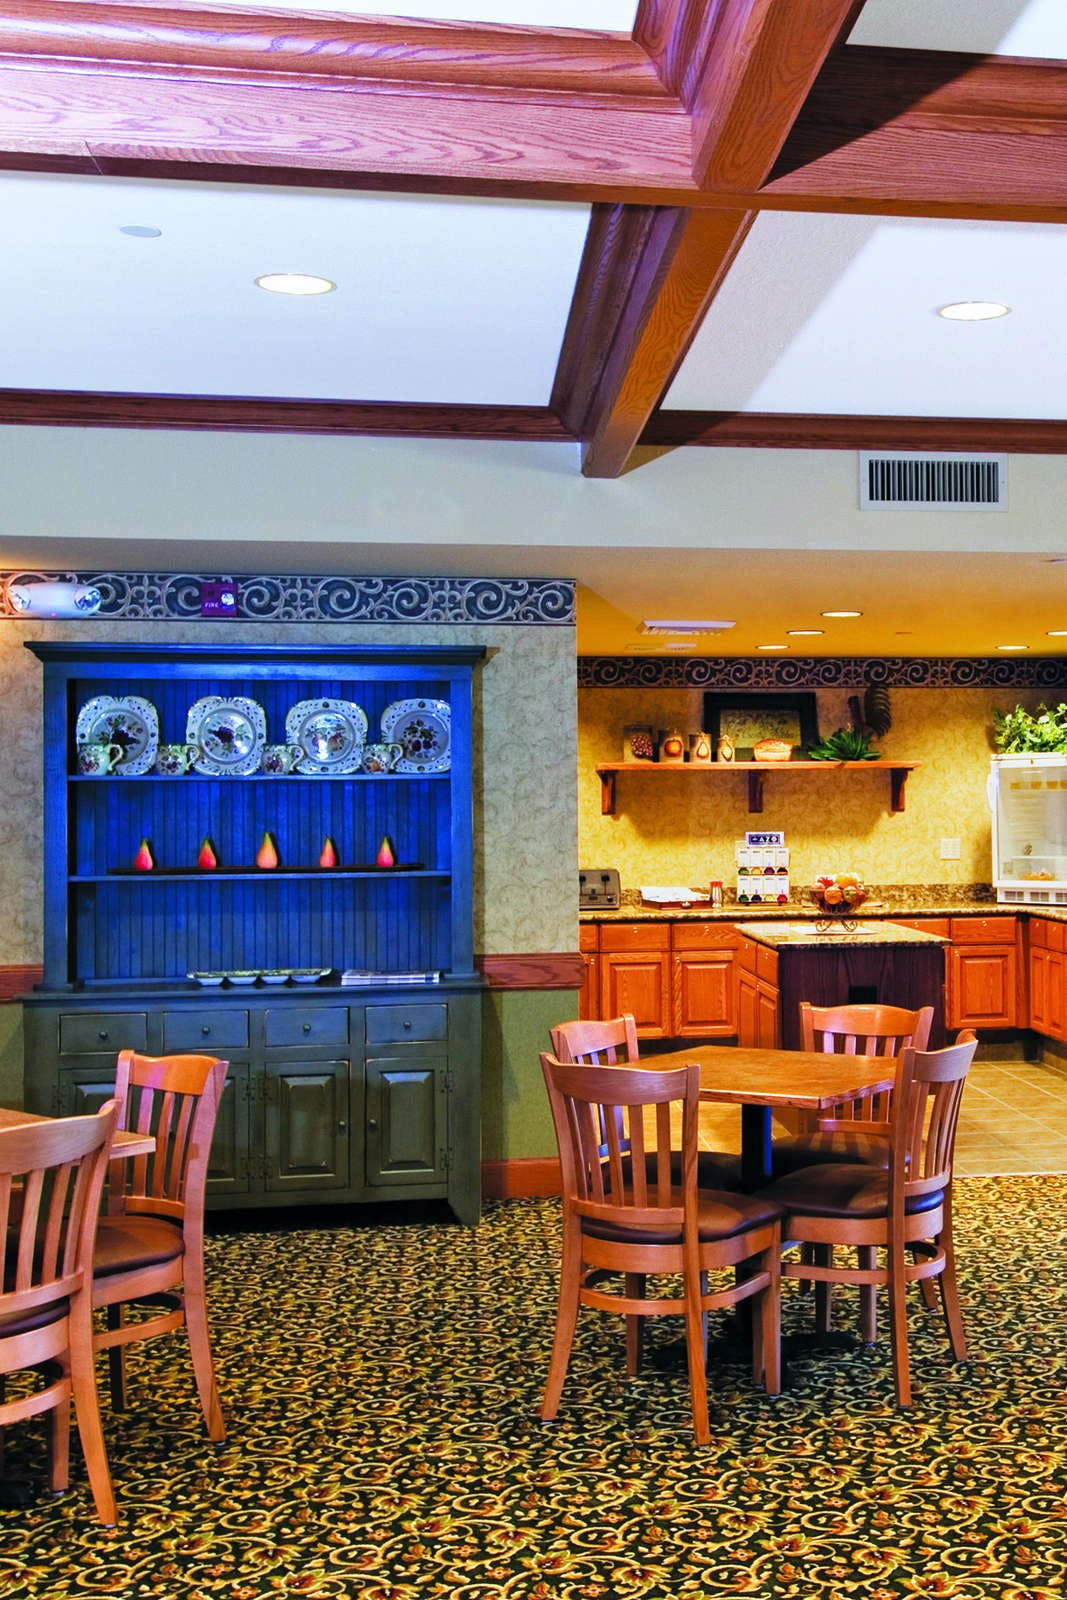 Country Inn & Suites by Radisson, Green Bay East, WI